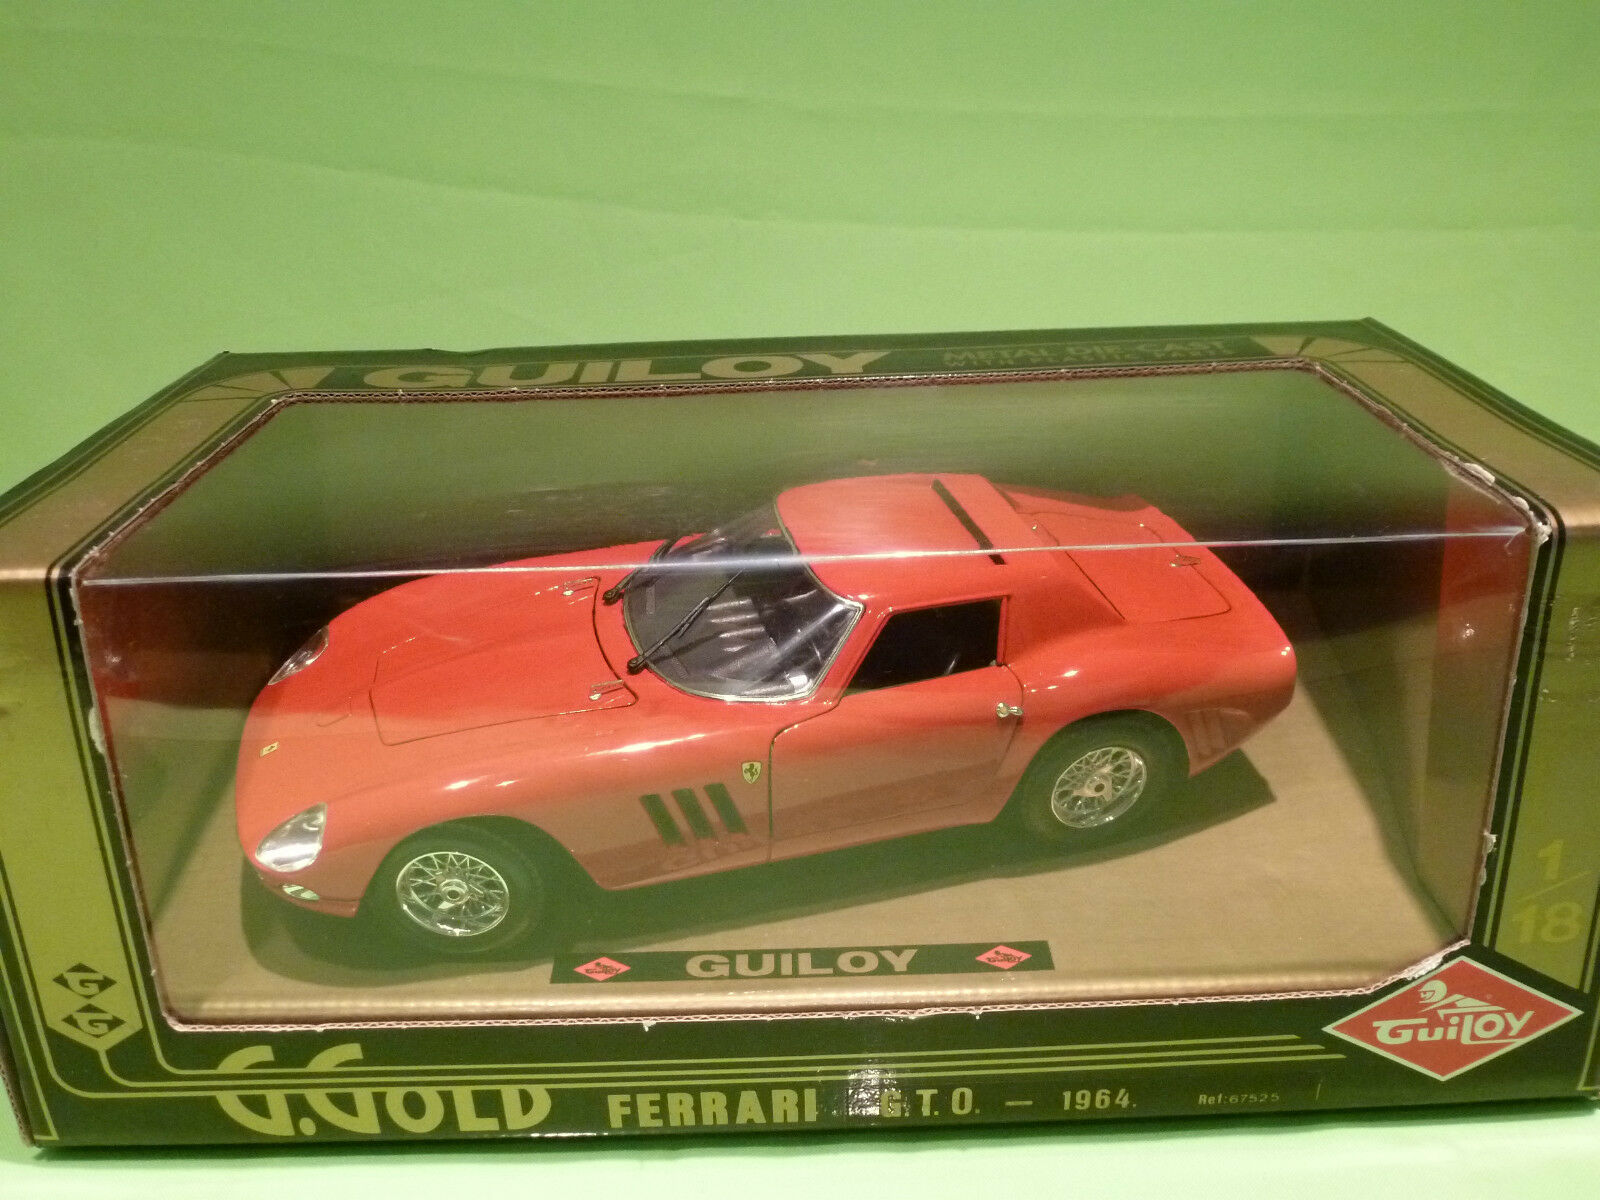 GUILOY 67525 FERRARI GTO 1964 - 1 18 - NEAR MINT CONDITION IN BOX